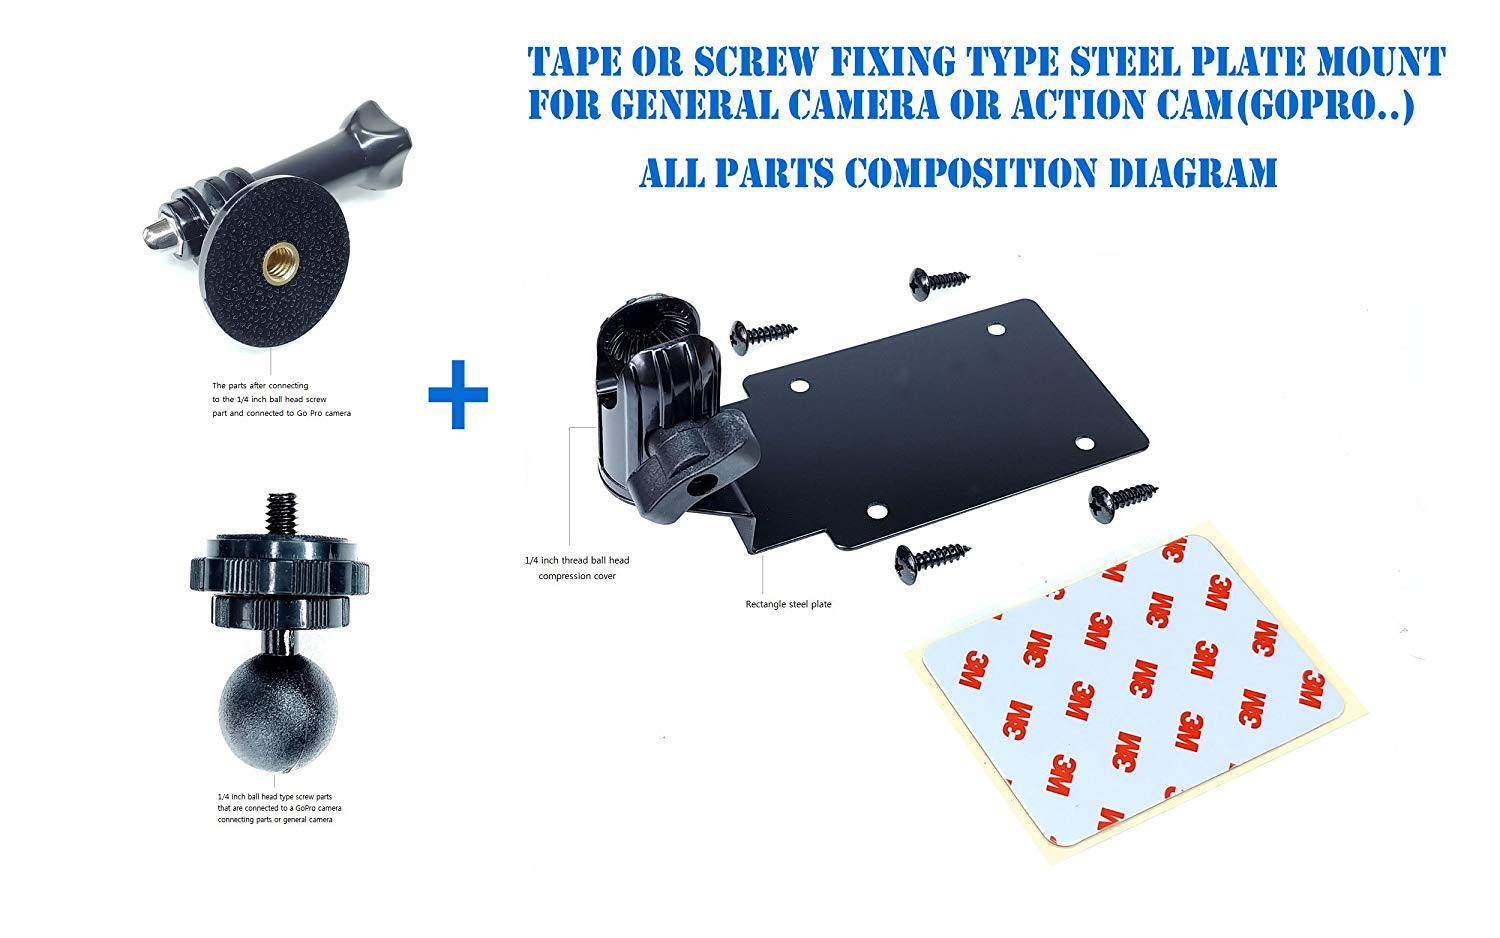 hight resolution of rectangular steel plate shape simple assembly type wall mount ceiling mount with a ball head compression